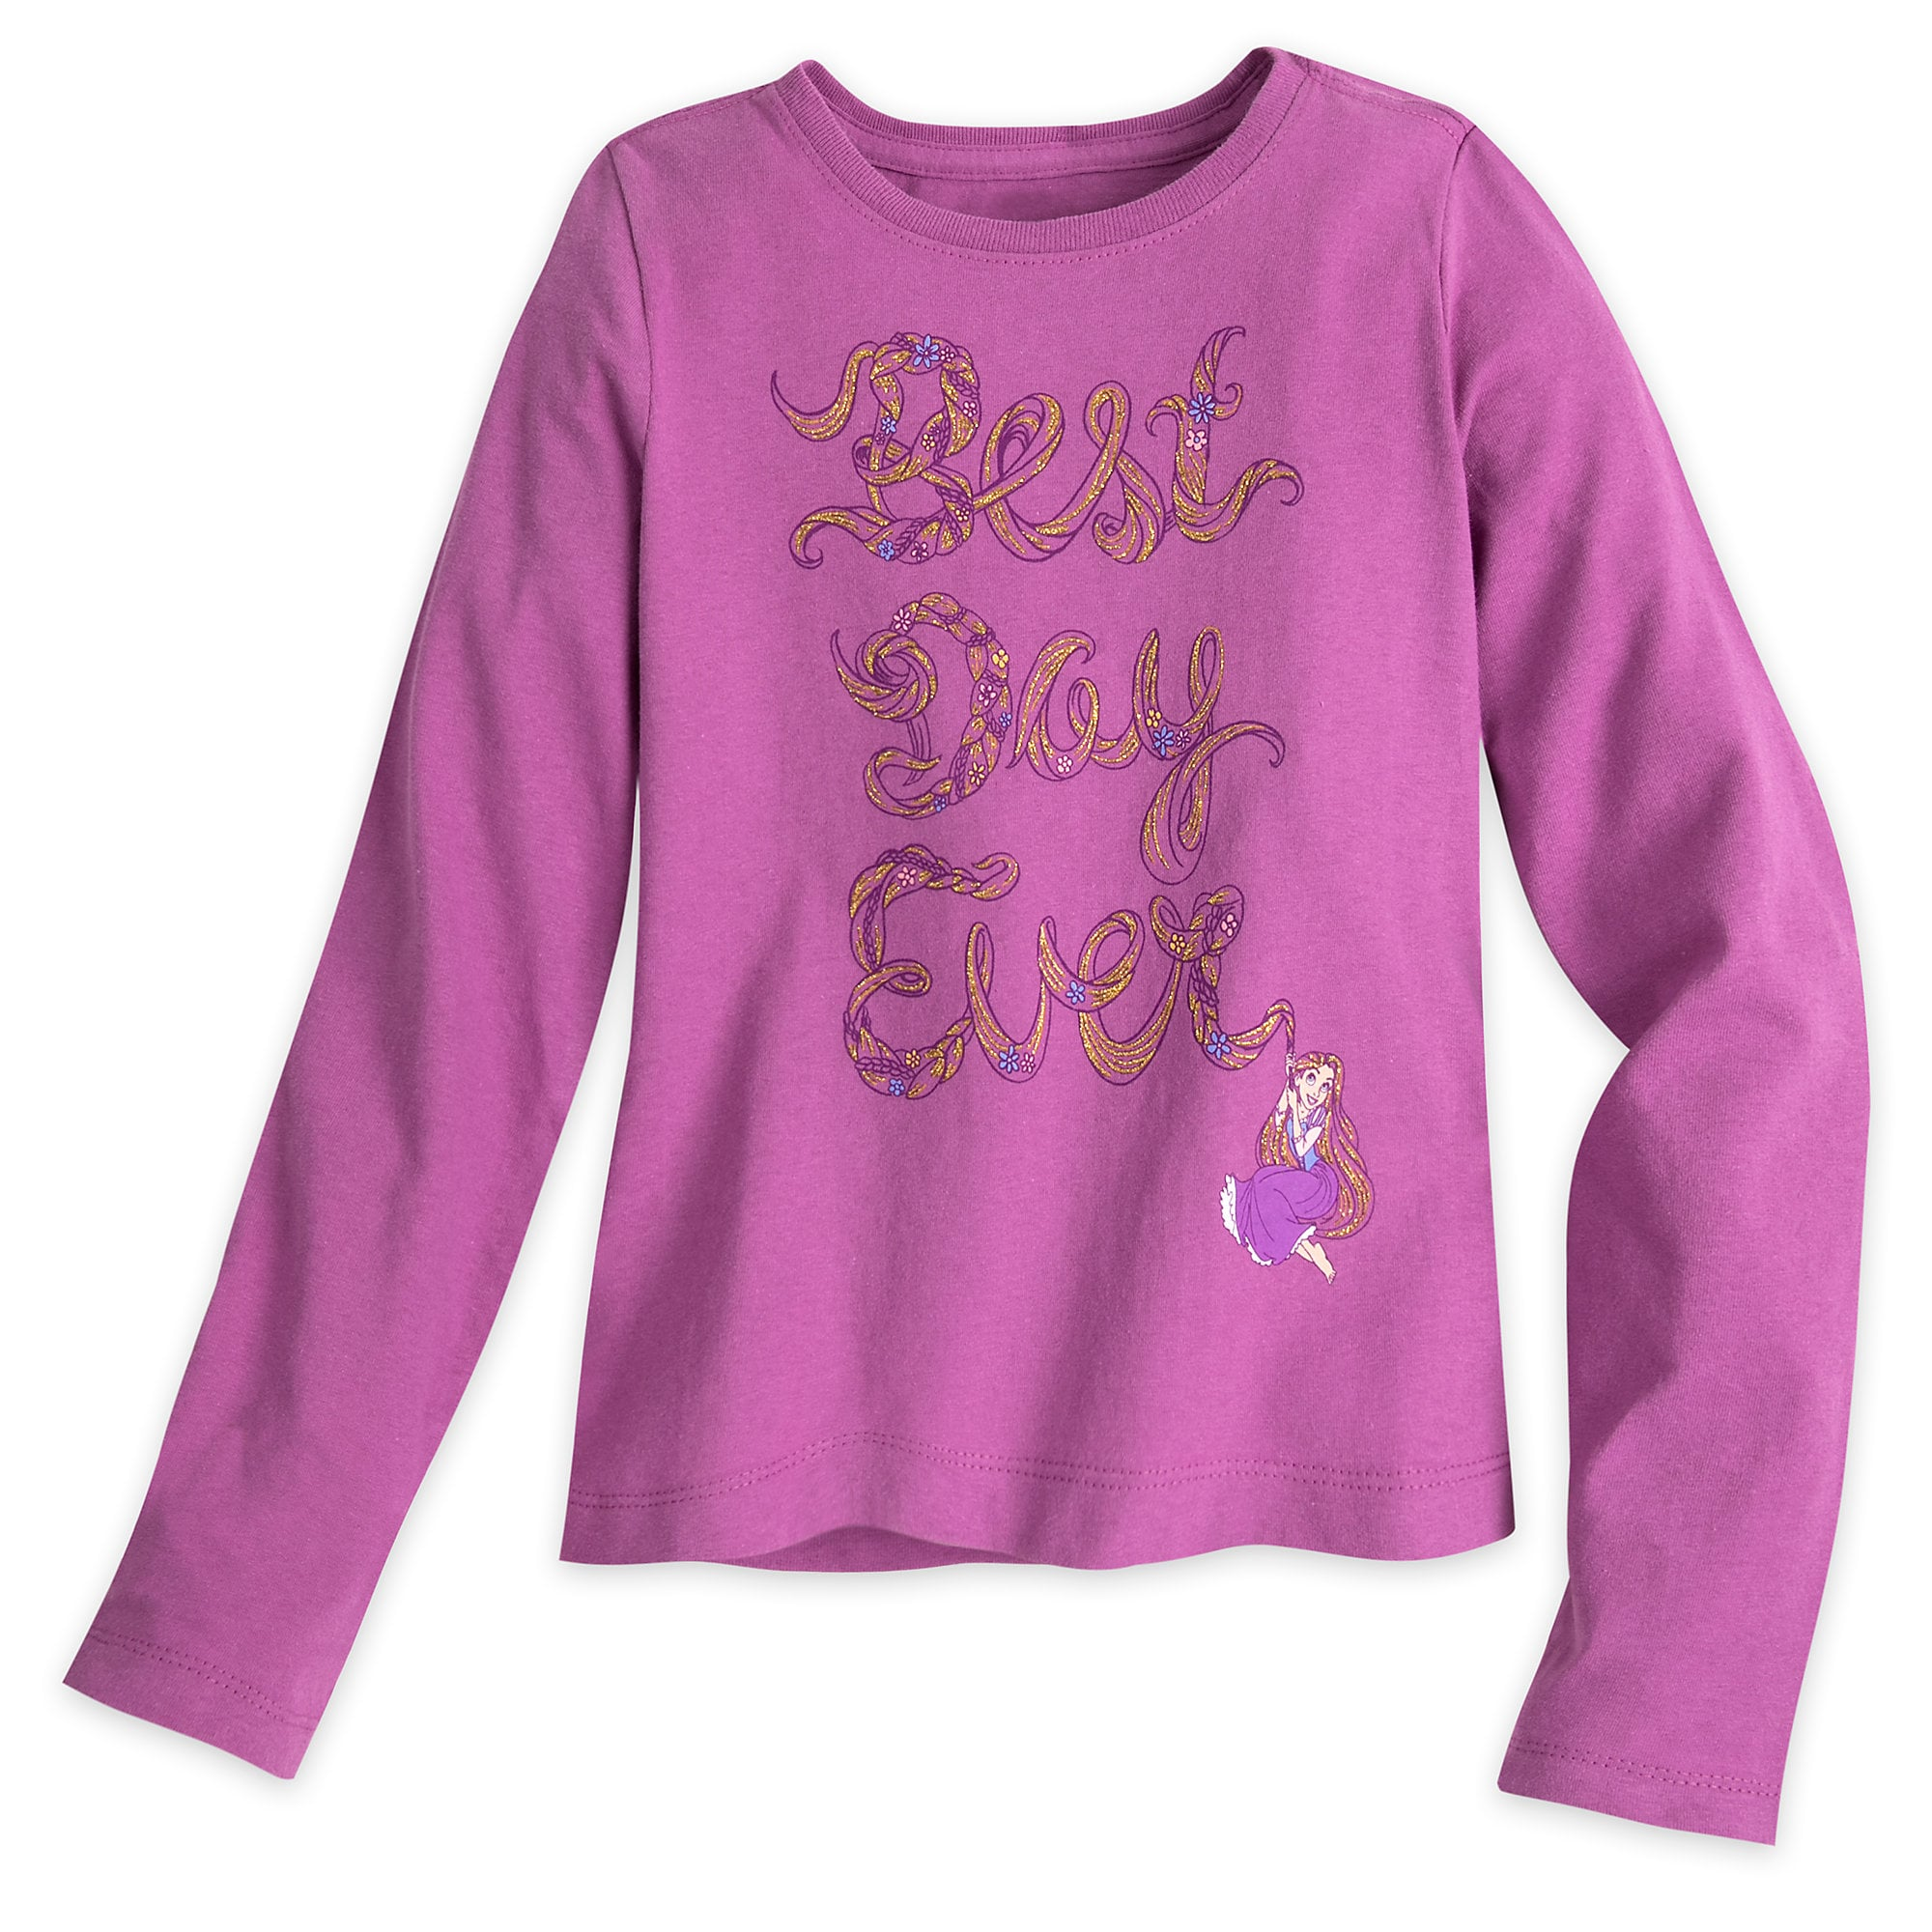 Rapunzel Long Sleeve Tee for Girls